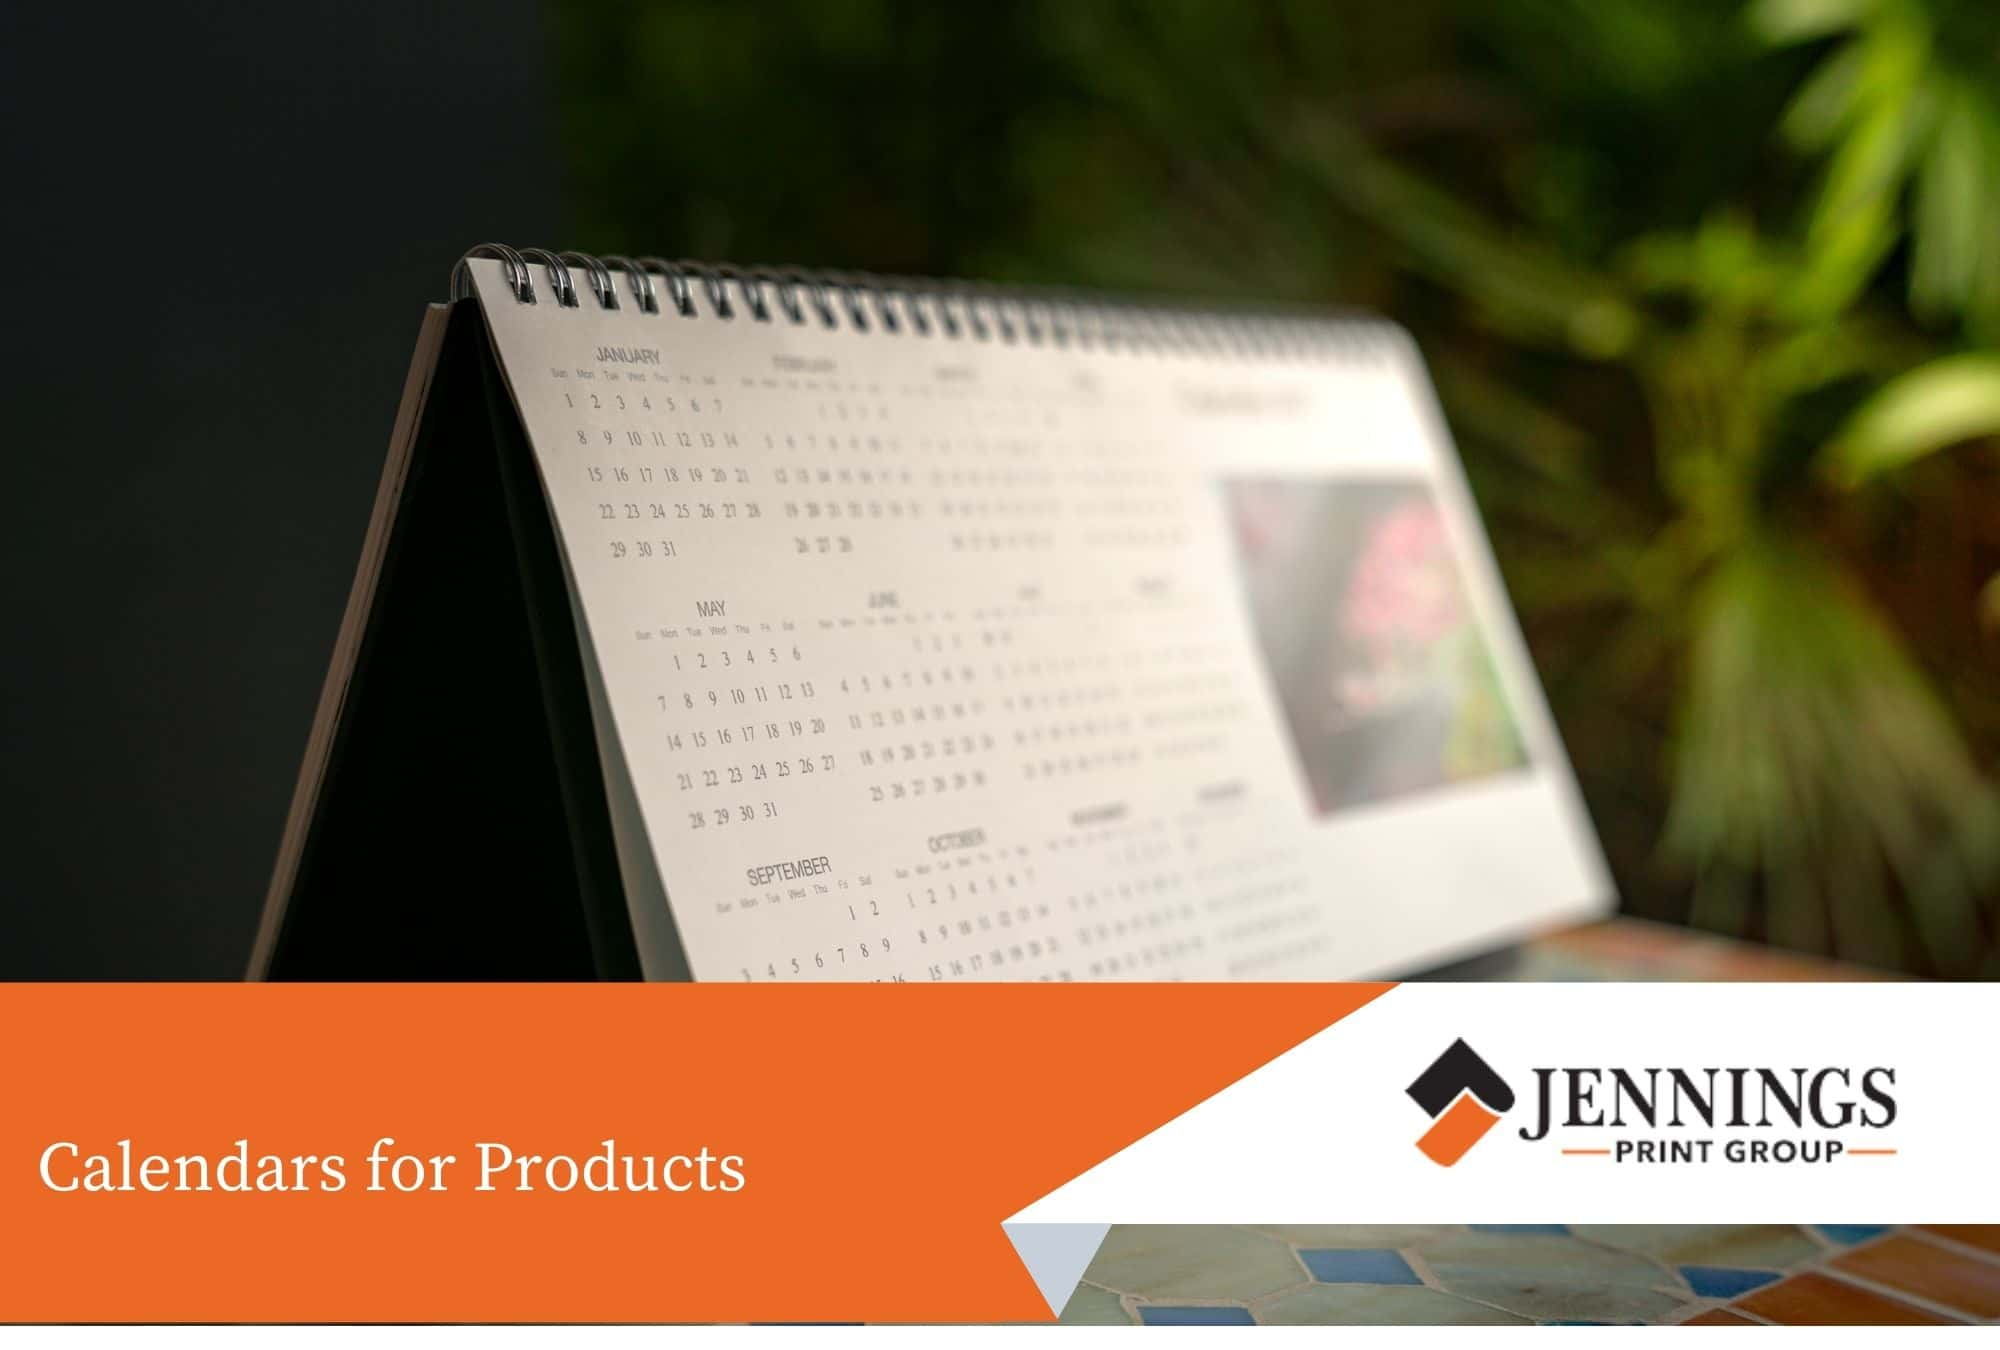 Calendars for Products